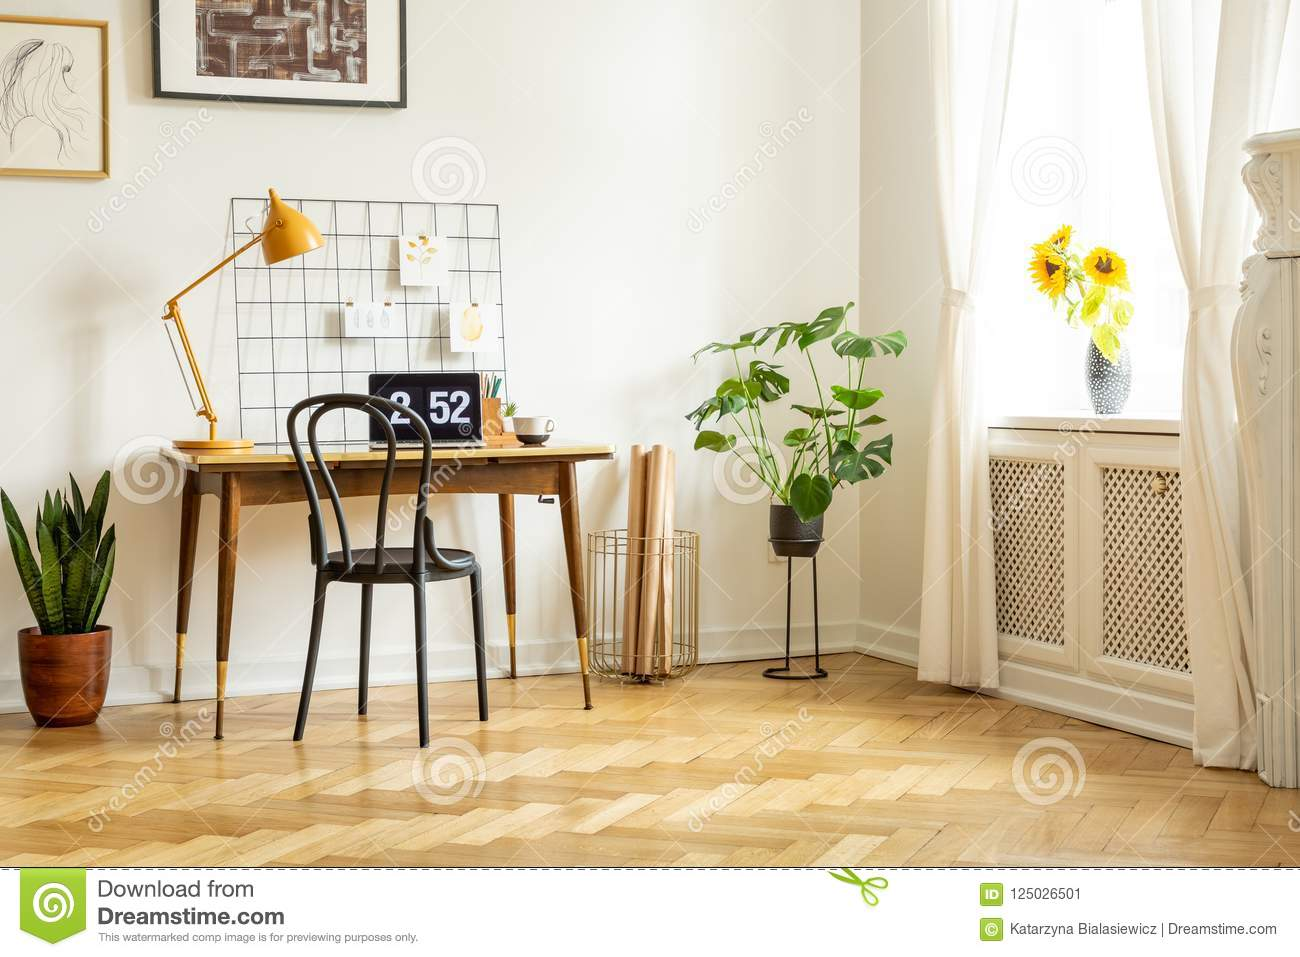 Lamp Plant Spacious Home Office Interior With A Desk Chair Yellow Lamp